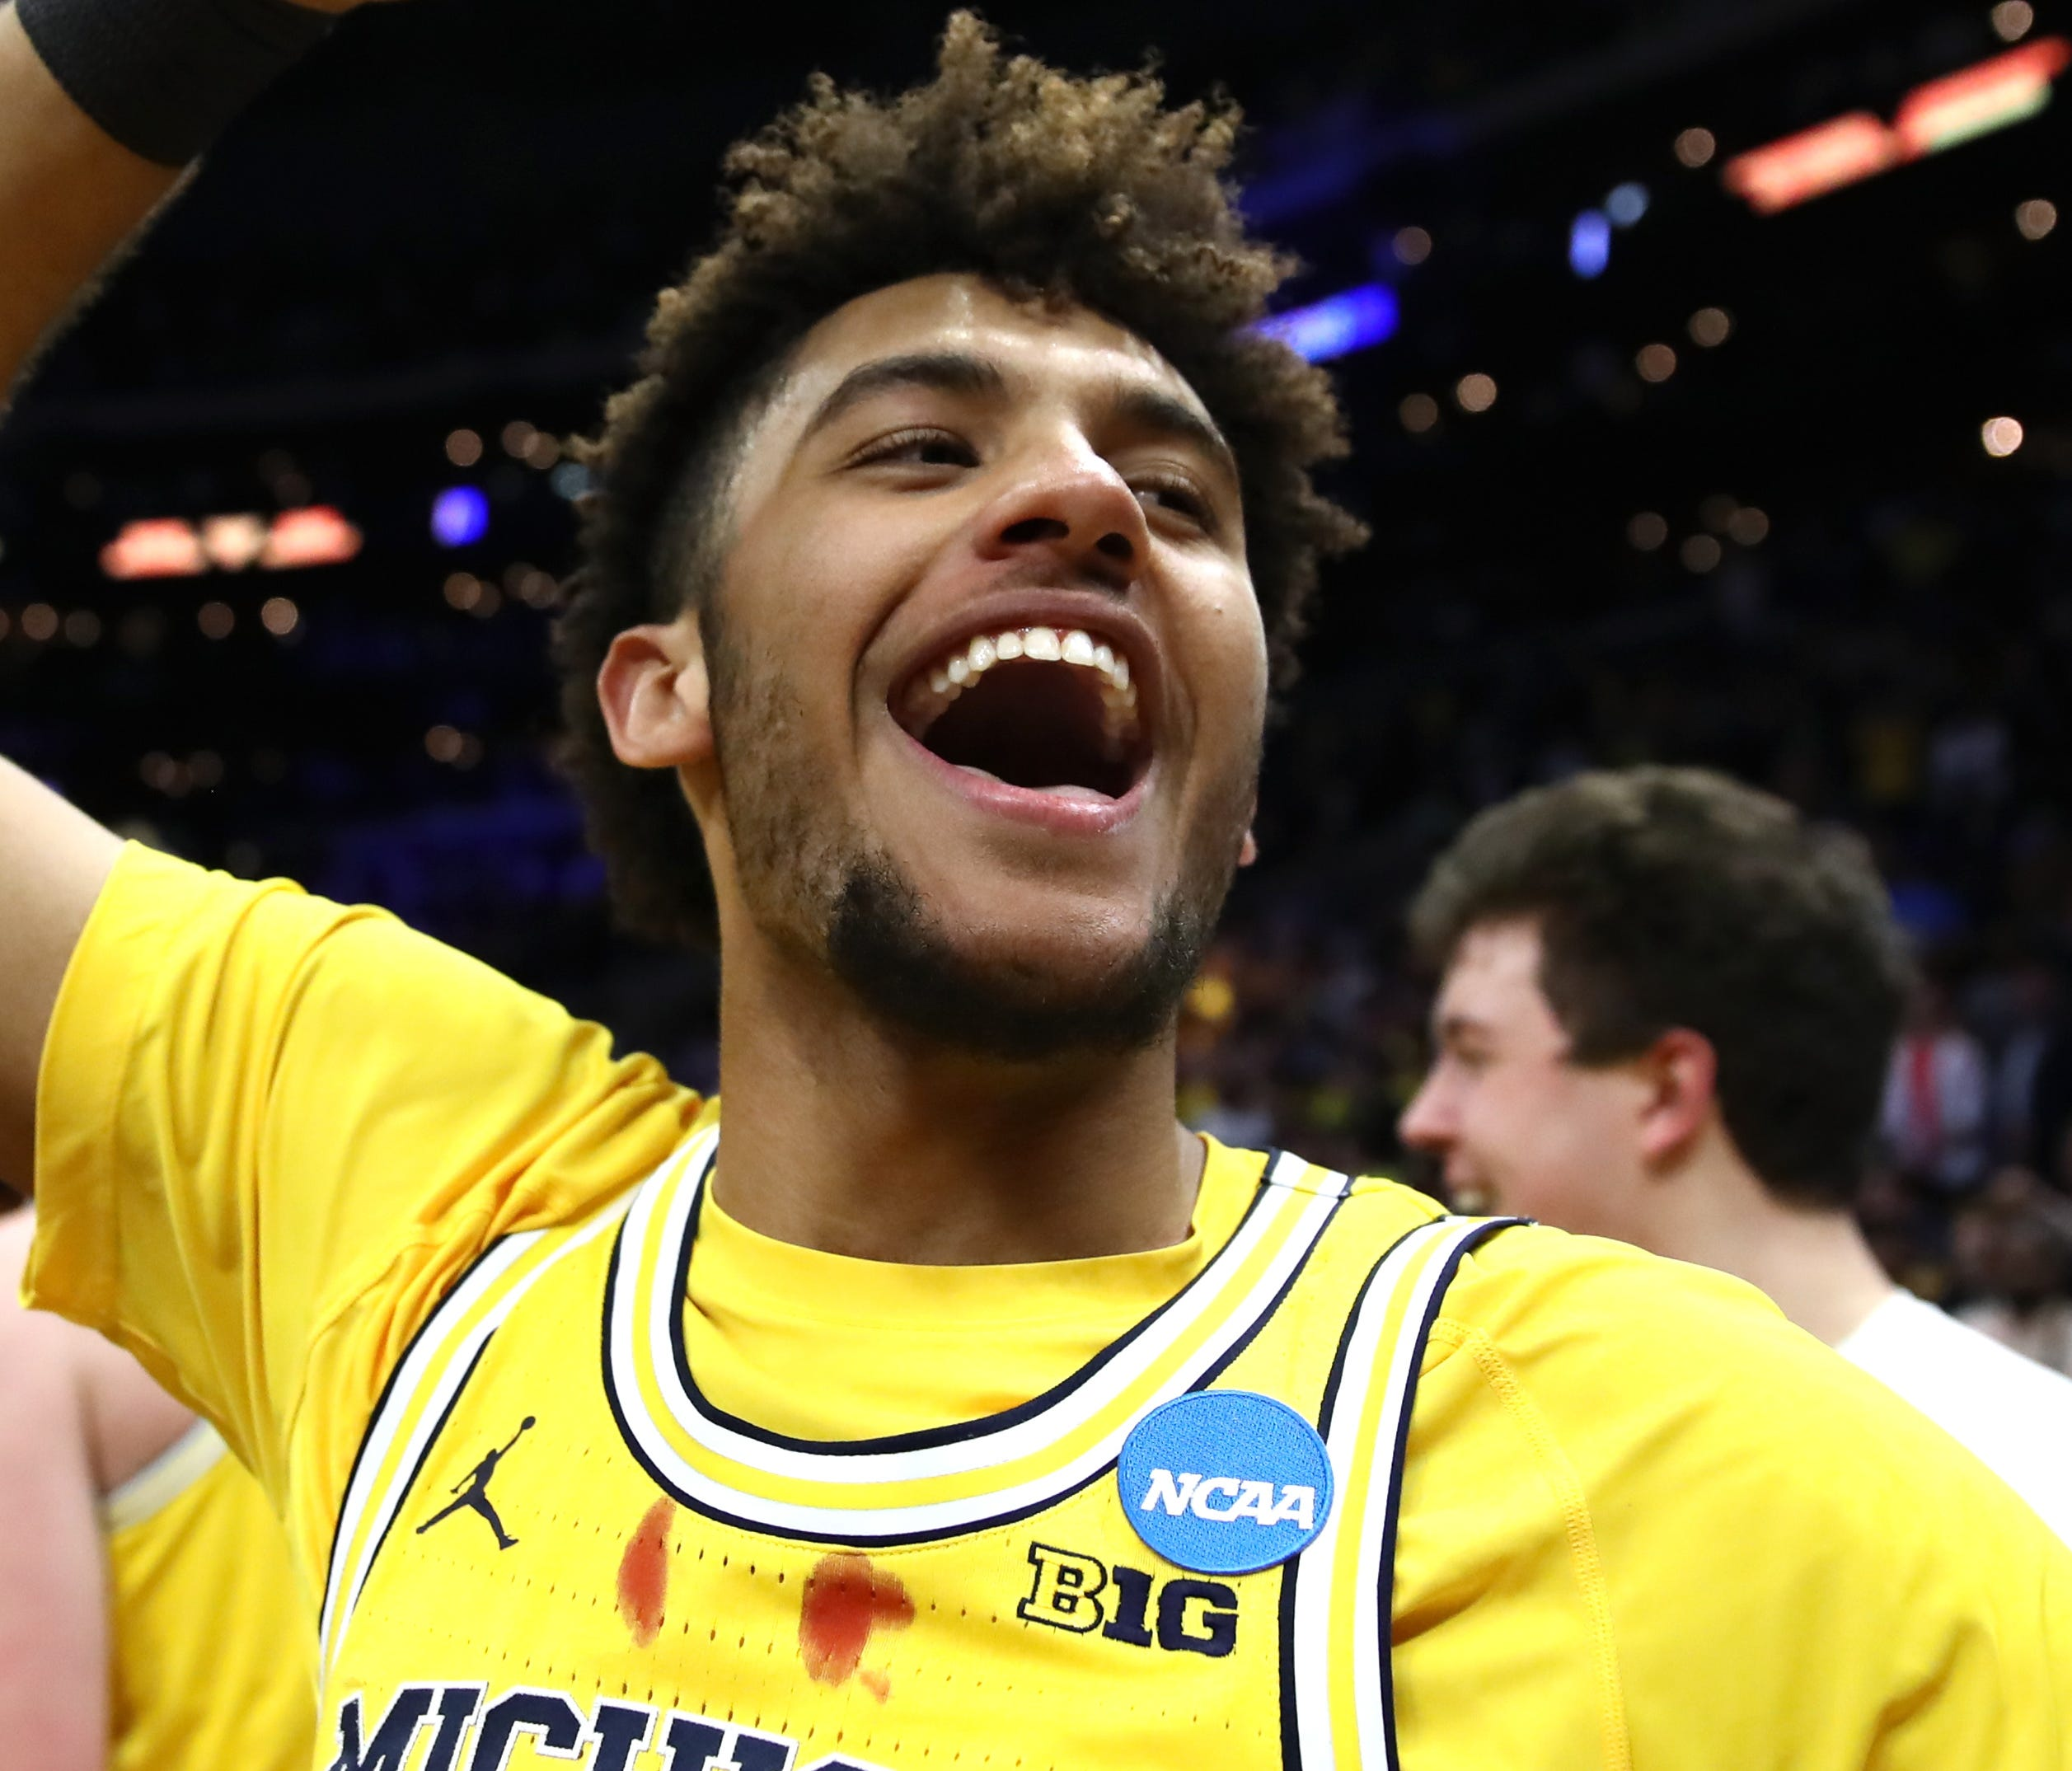 Michigan's Isaiah Livers celebrates after the Wolverines beat Florida State in the West Regional Final.